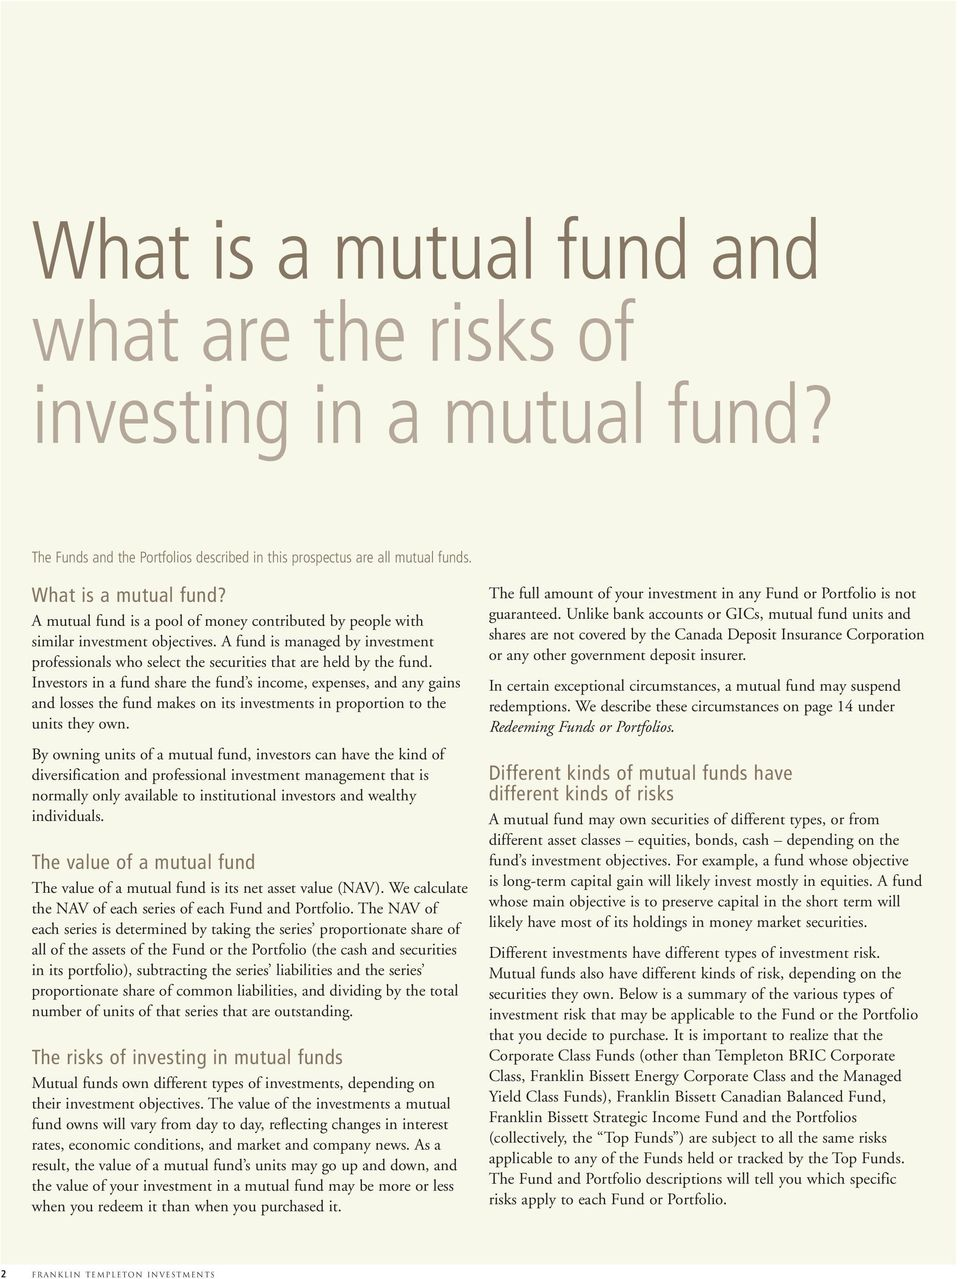 Investors in a fund share the fund s income, expenses, and any gains and losses the fund makes on its investments in proportion to the units they own.